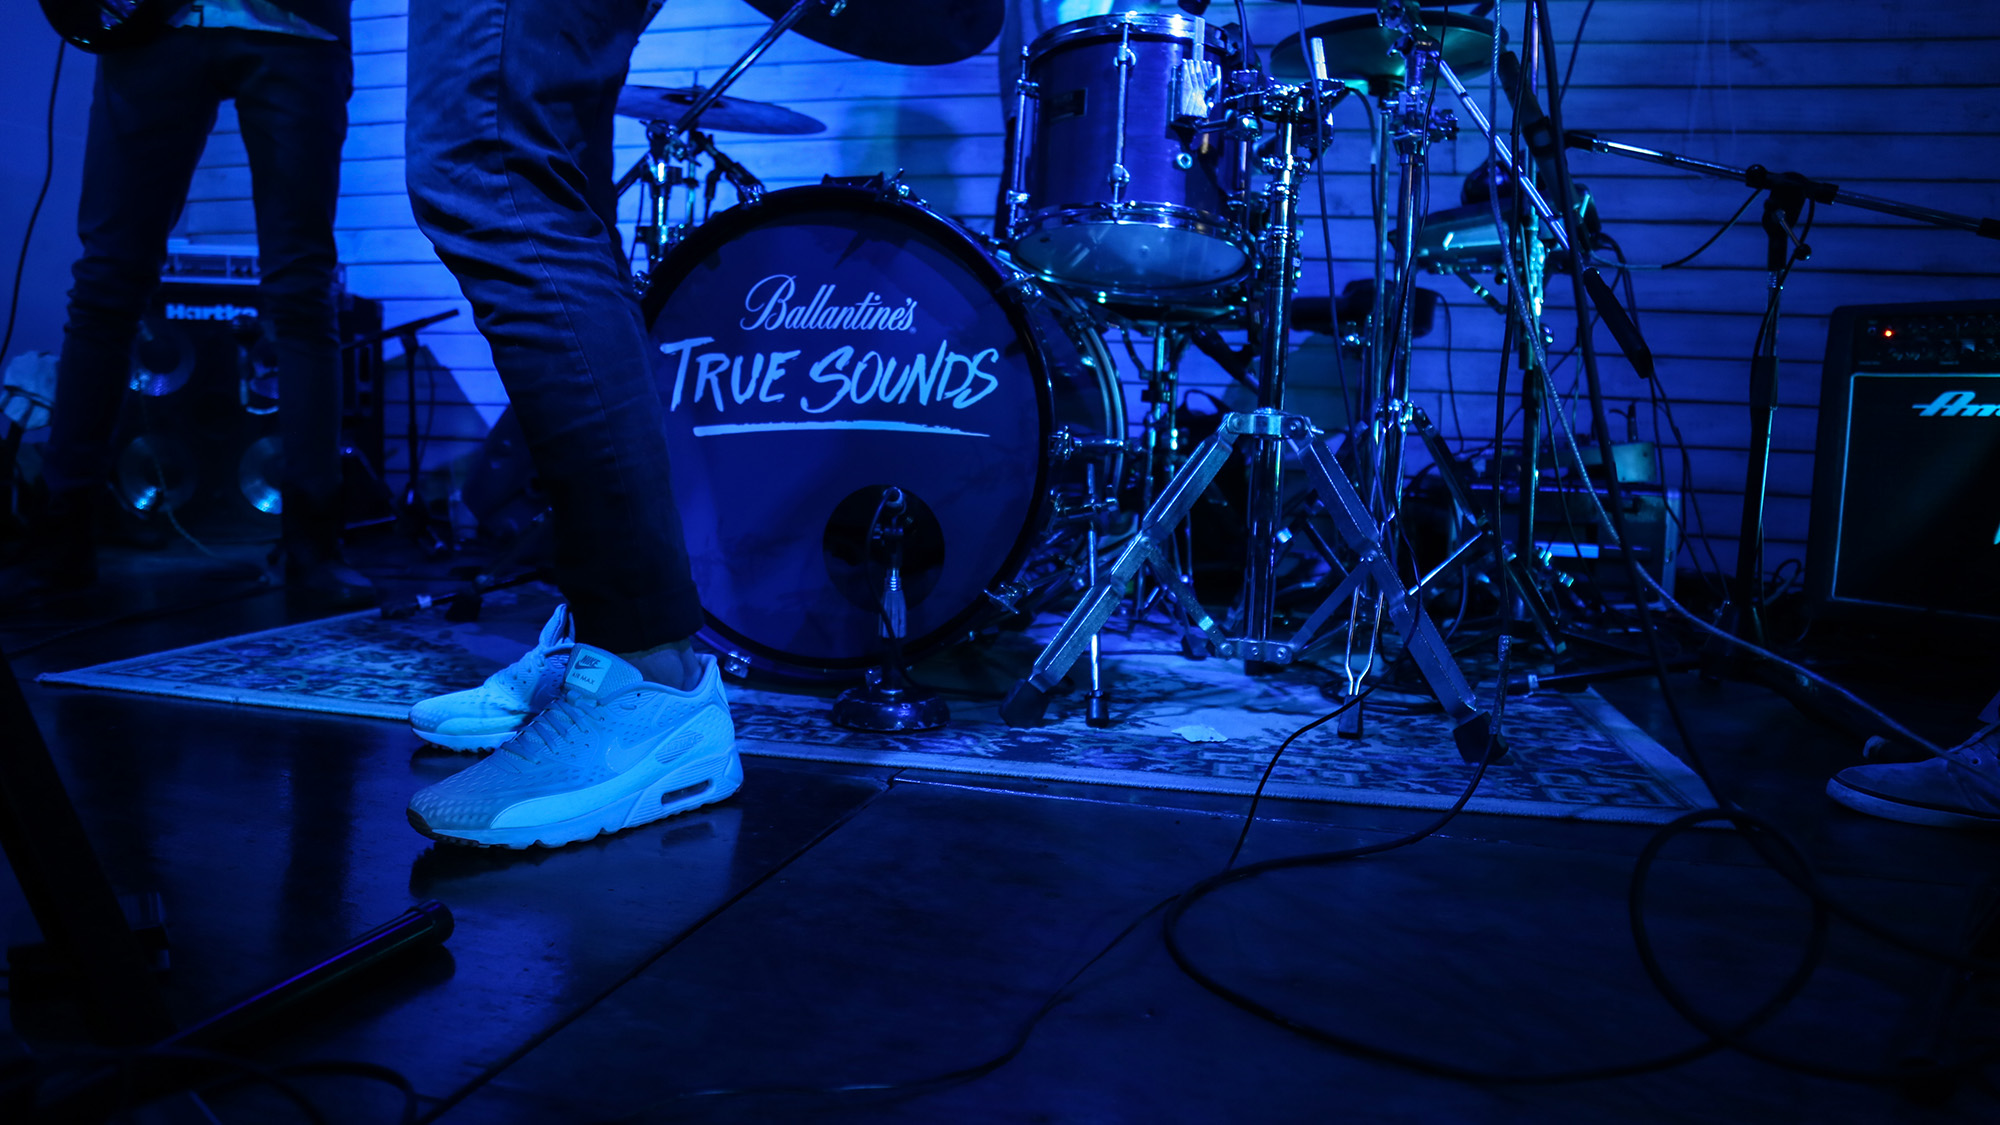 ballantines-true-sounds-1